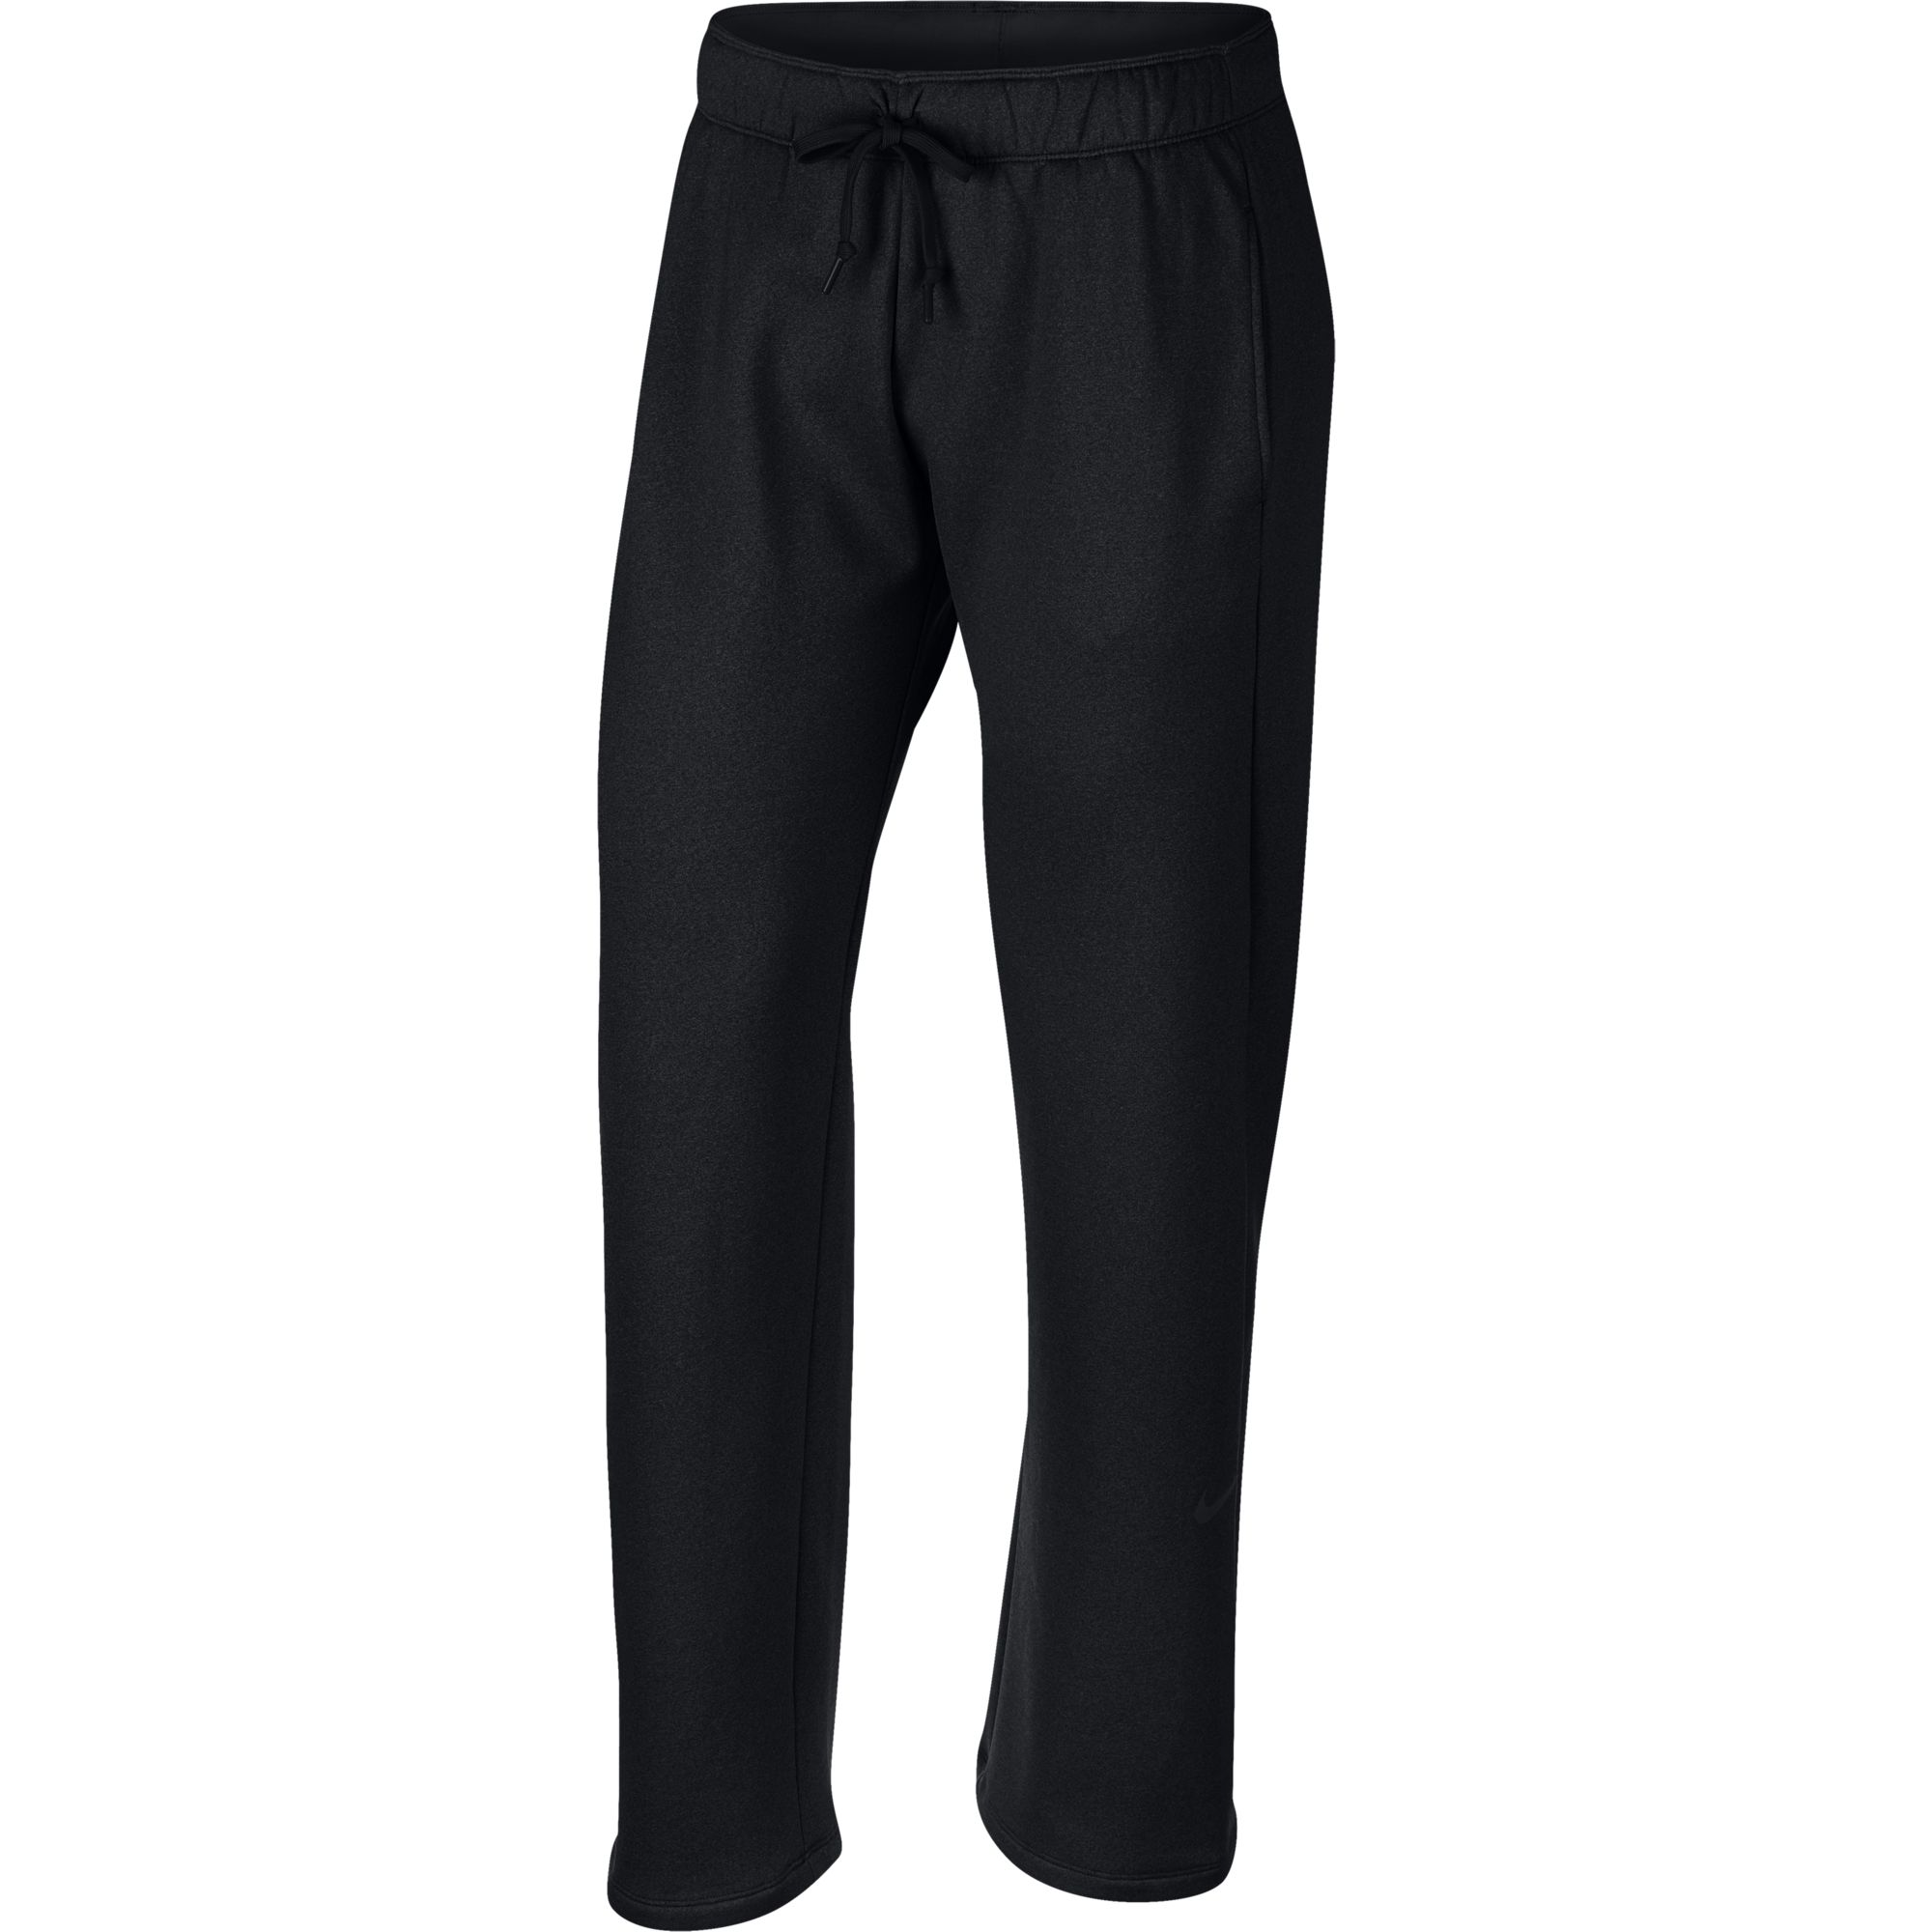 Women's Therma All Time Pants, Black, swatch